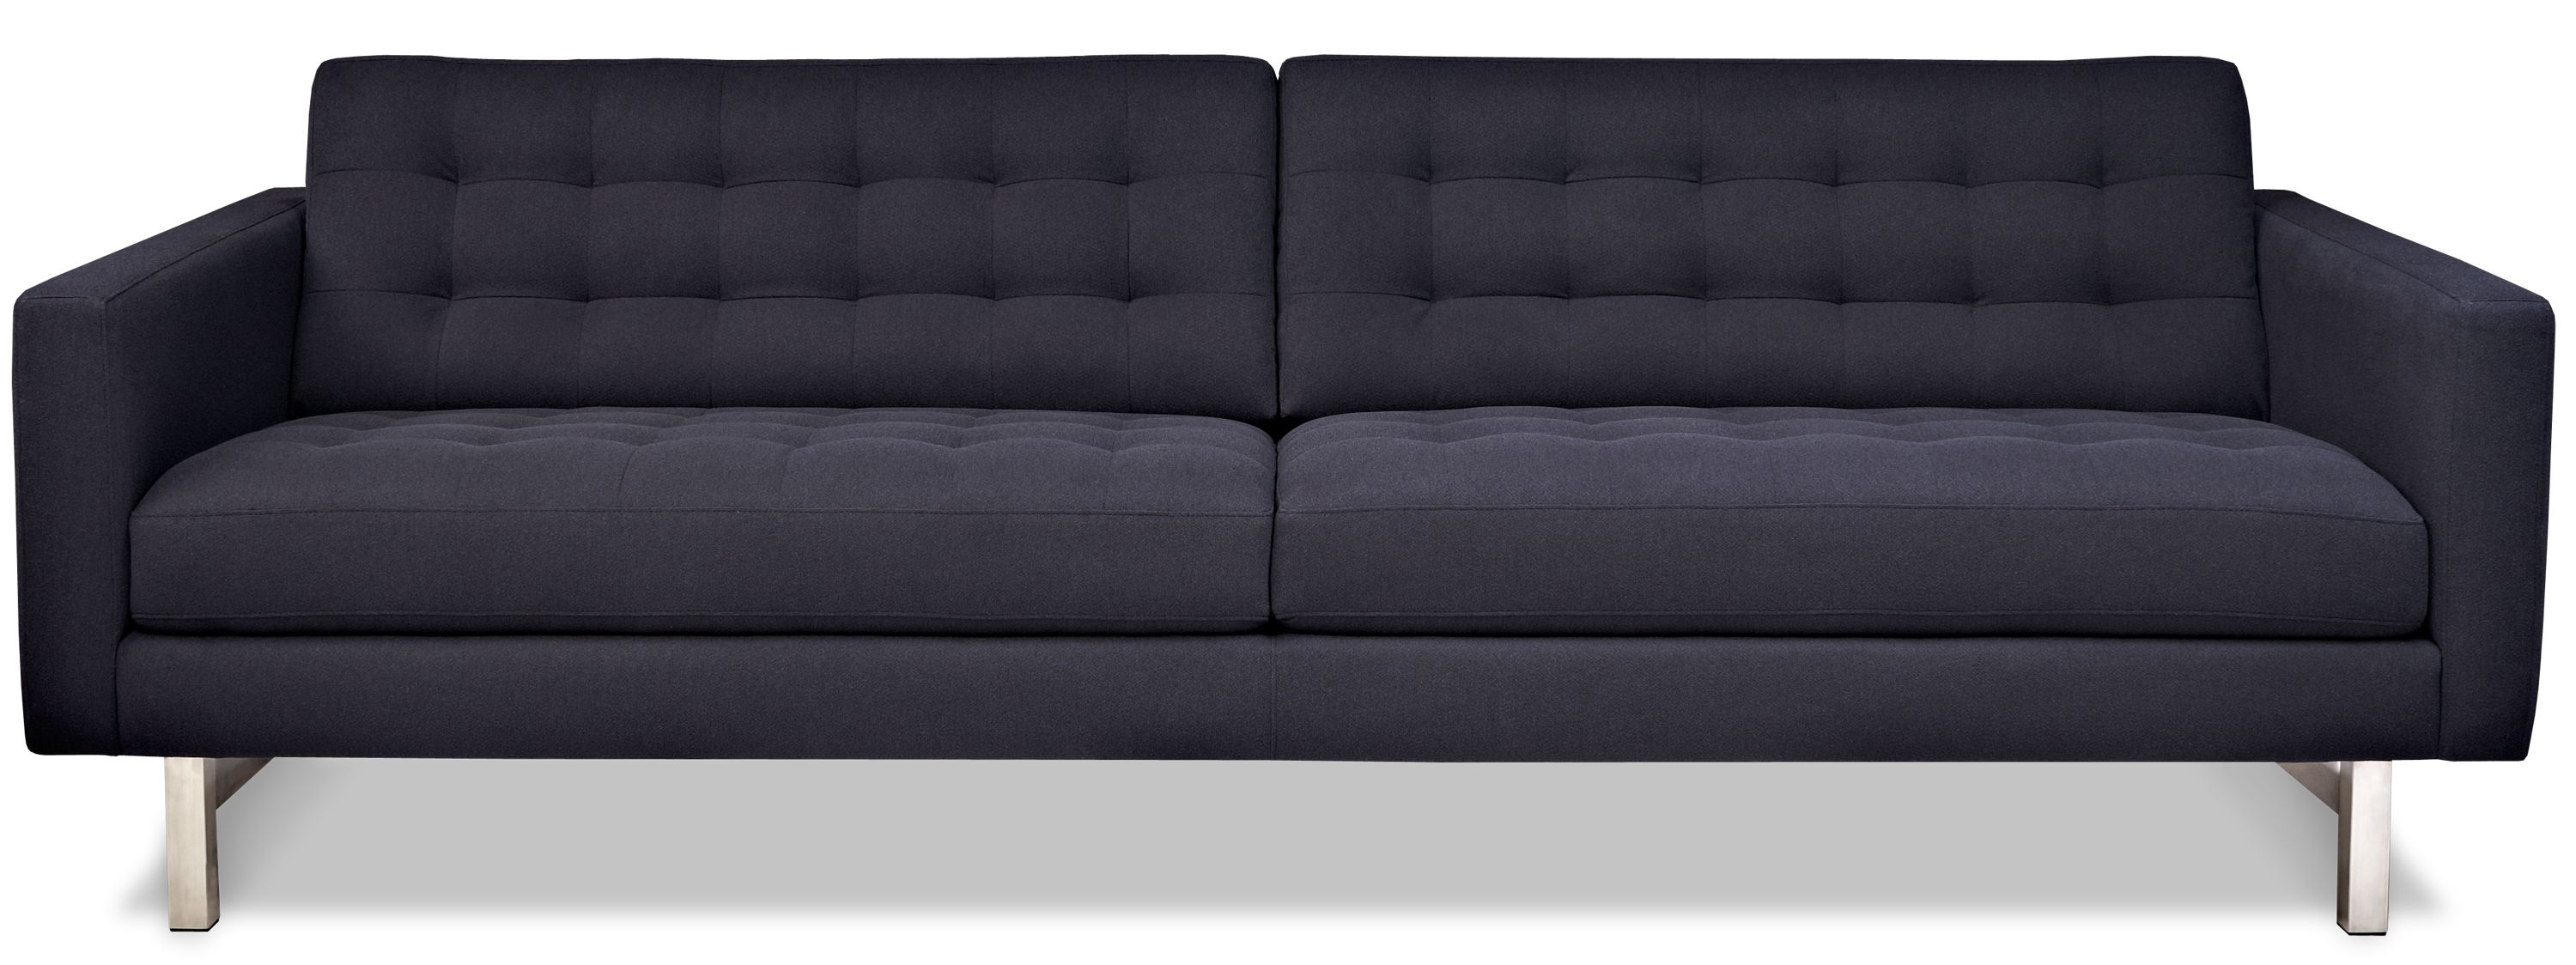 American Leather Parker Sofa Is Ordered And On The Way, Though In Ultra  Suede Style